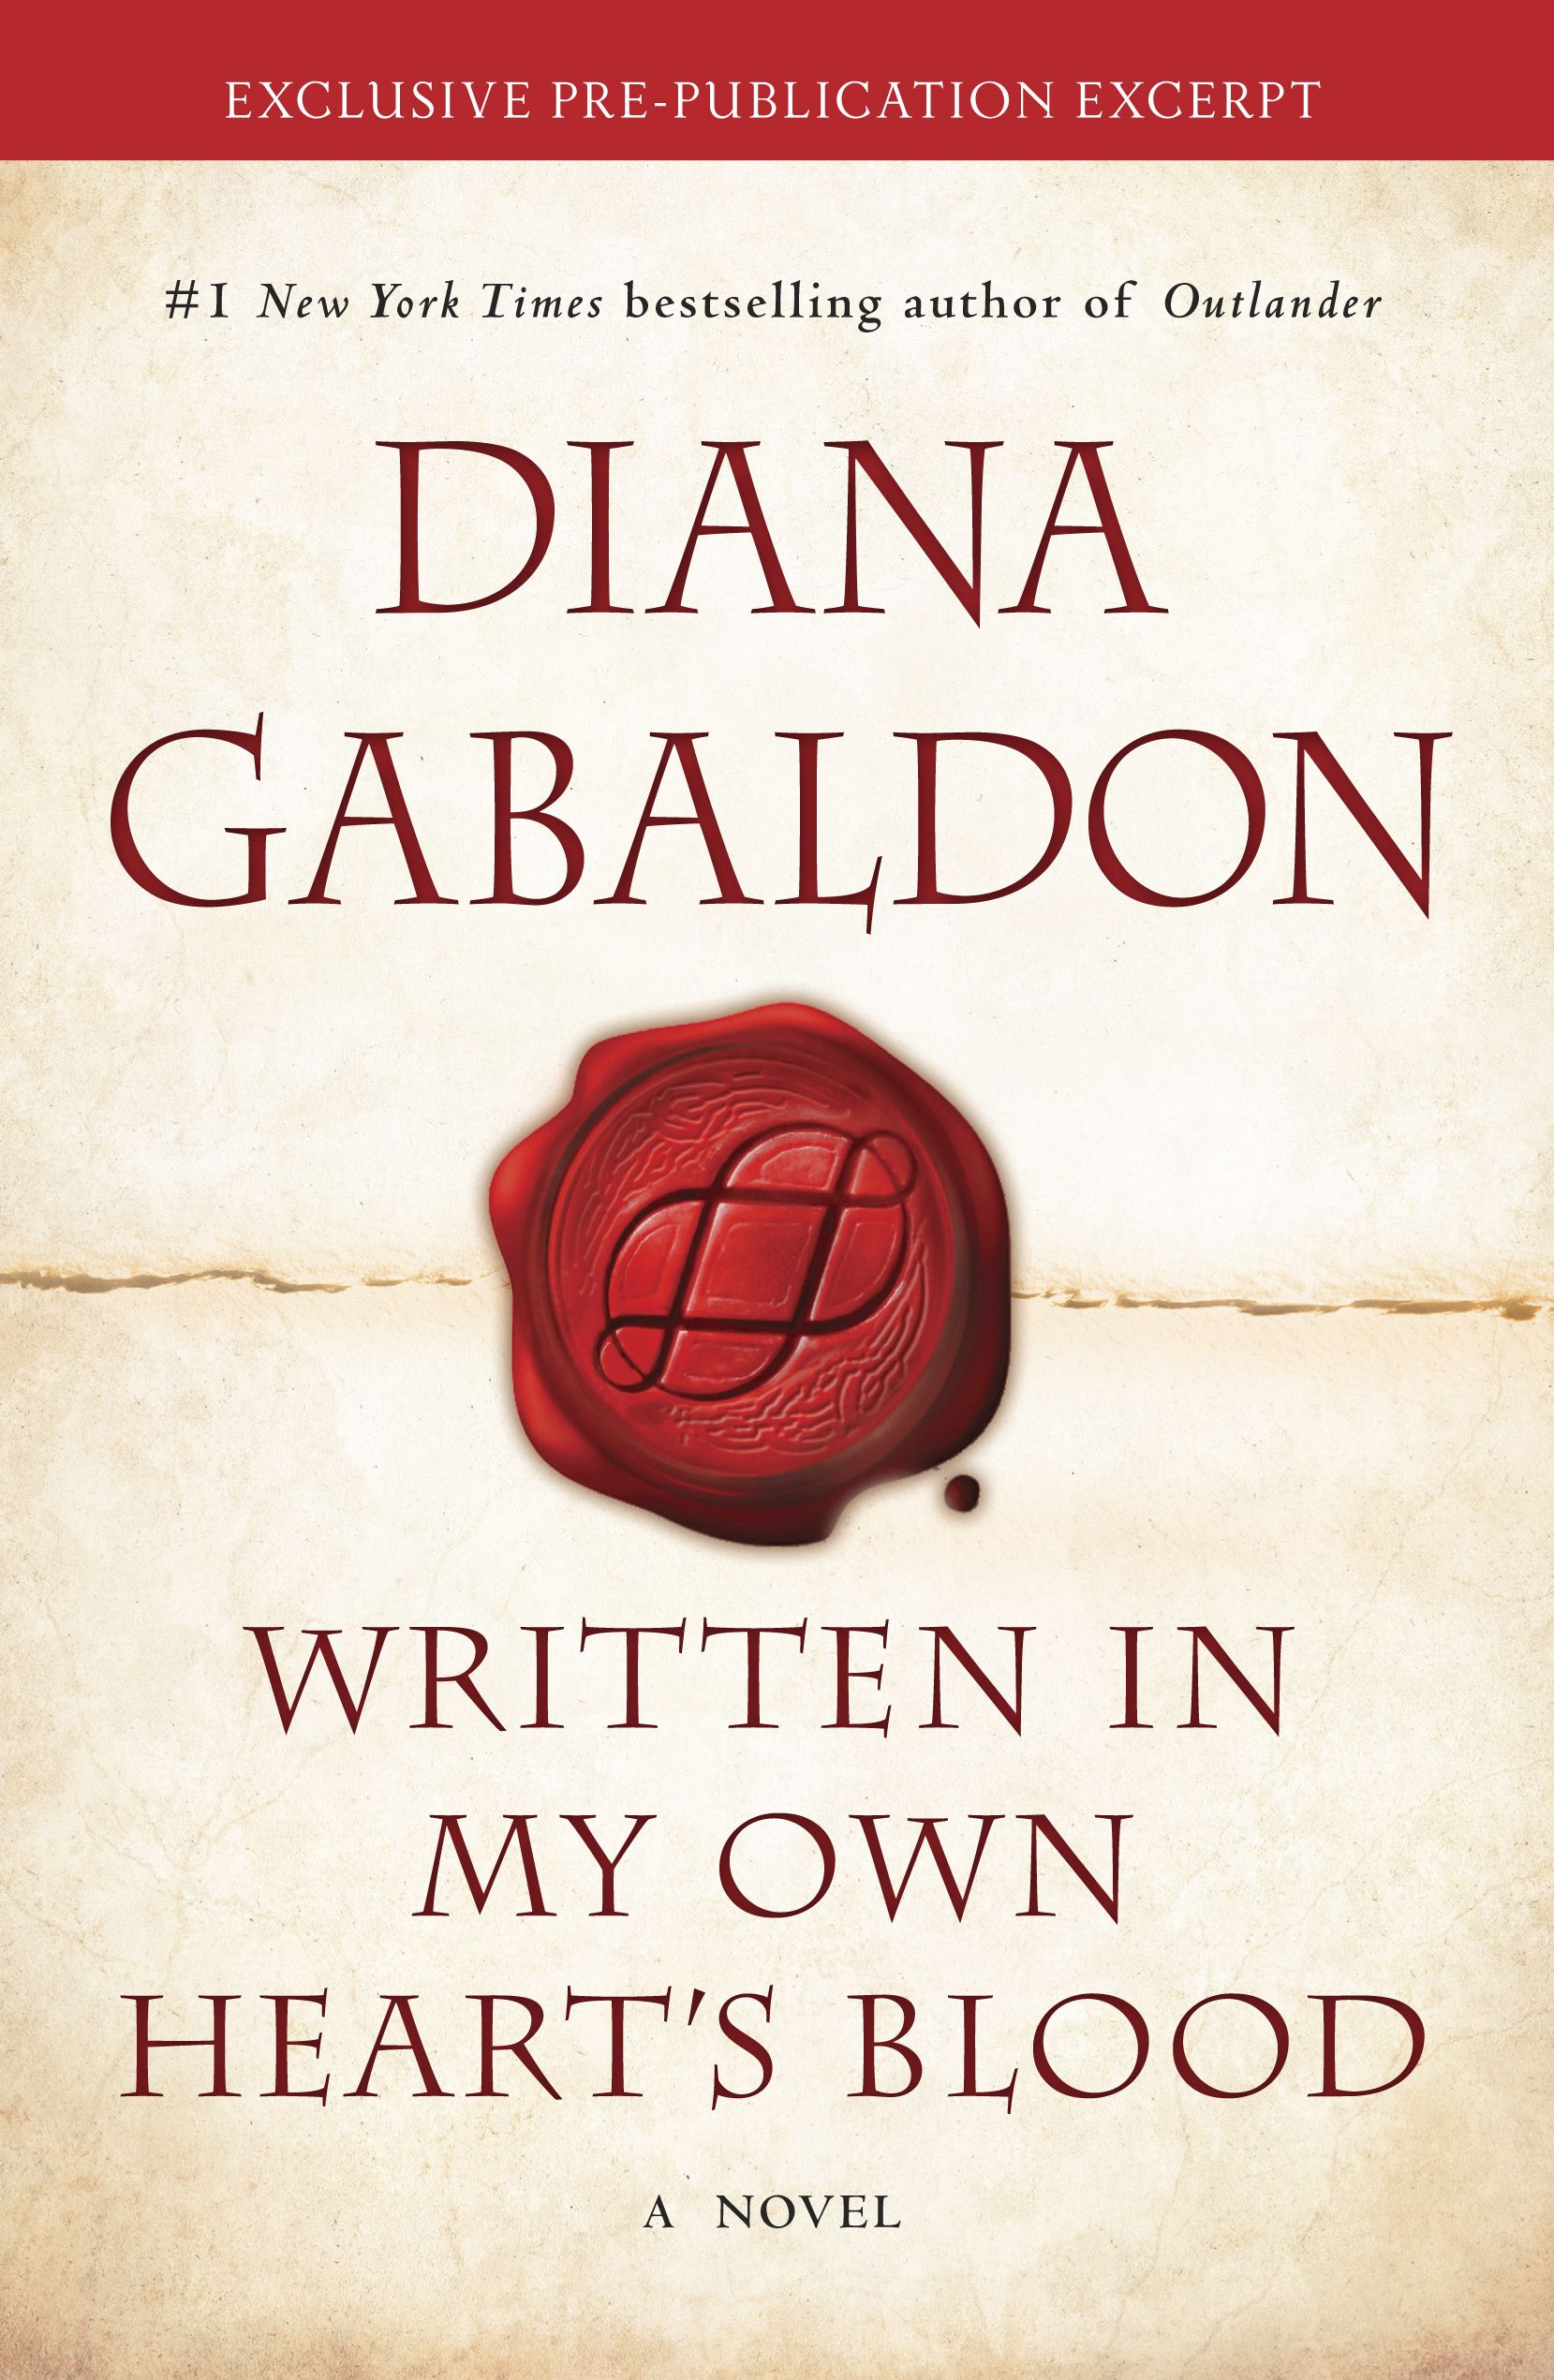 ... limited-edition booklet containing the full text of the first 7  chapters of Diana Gabaldon's upcoming novel, WRITTEN IN MY OWN HEART'S BLOOD  (Book 8 of ...